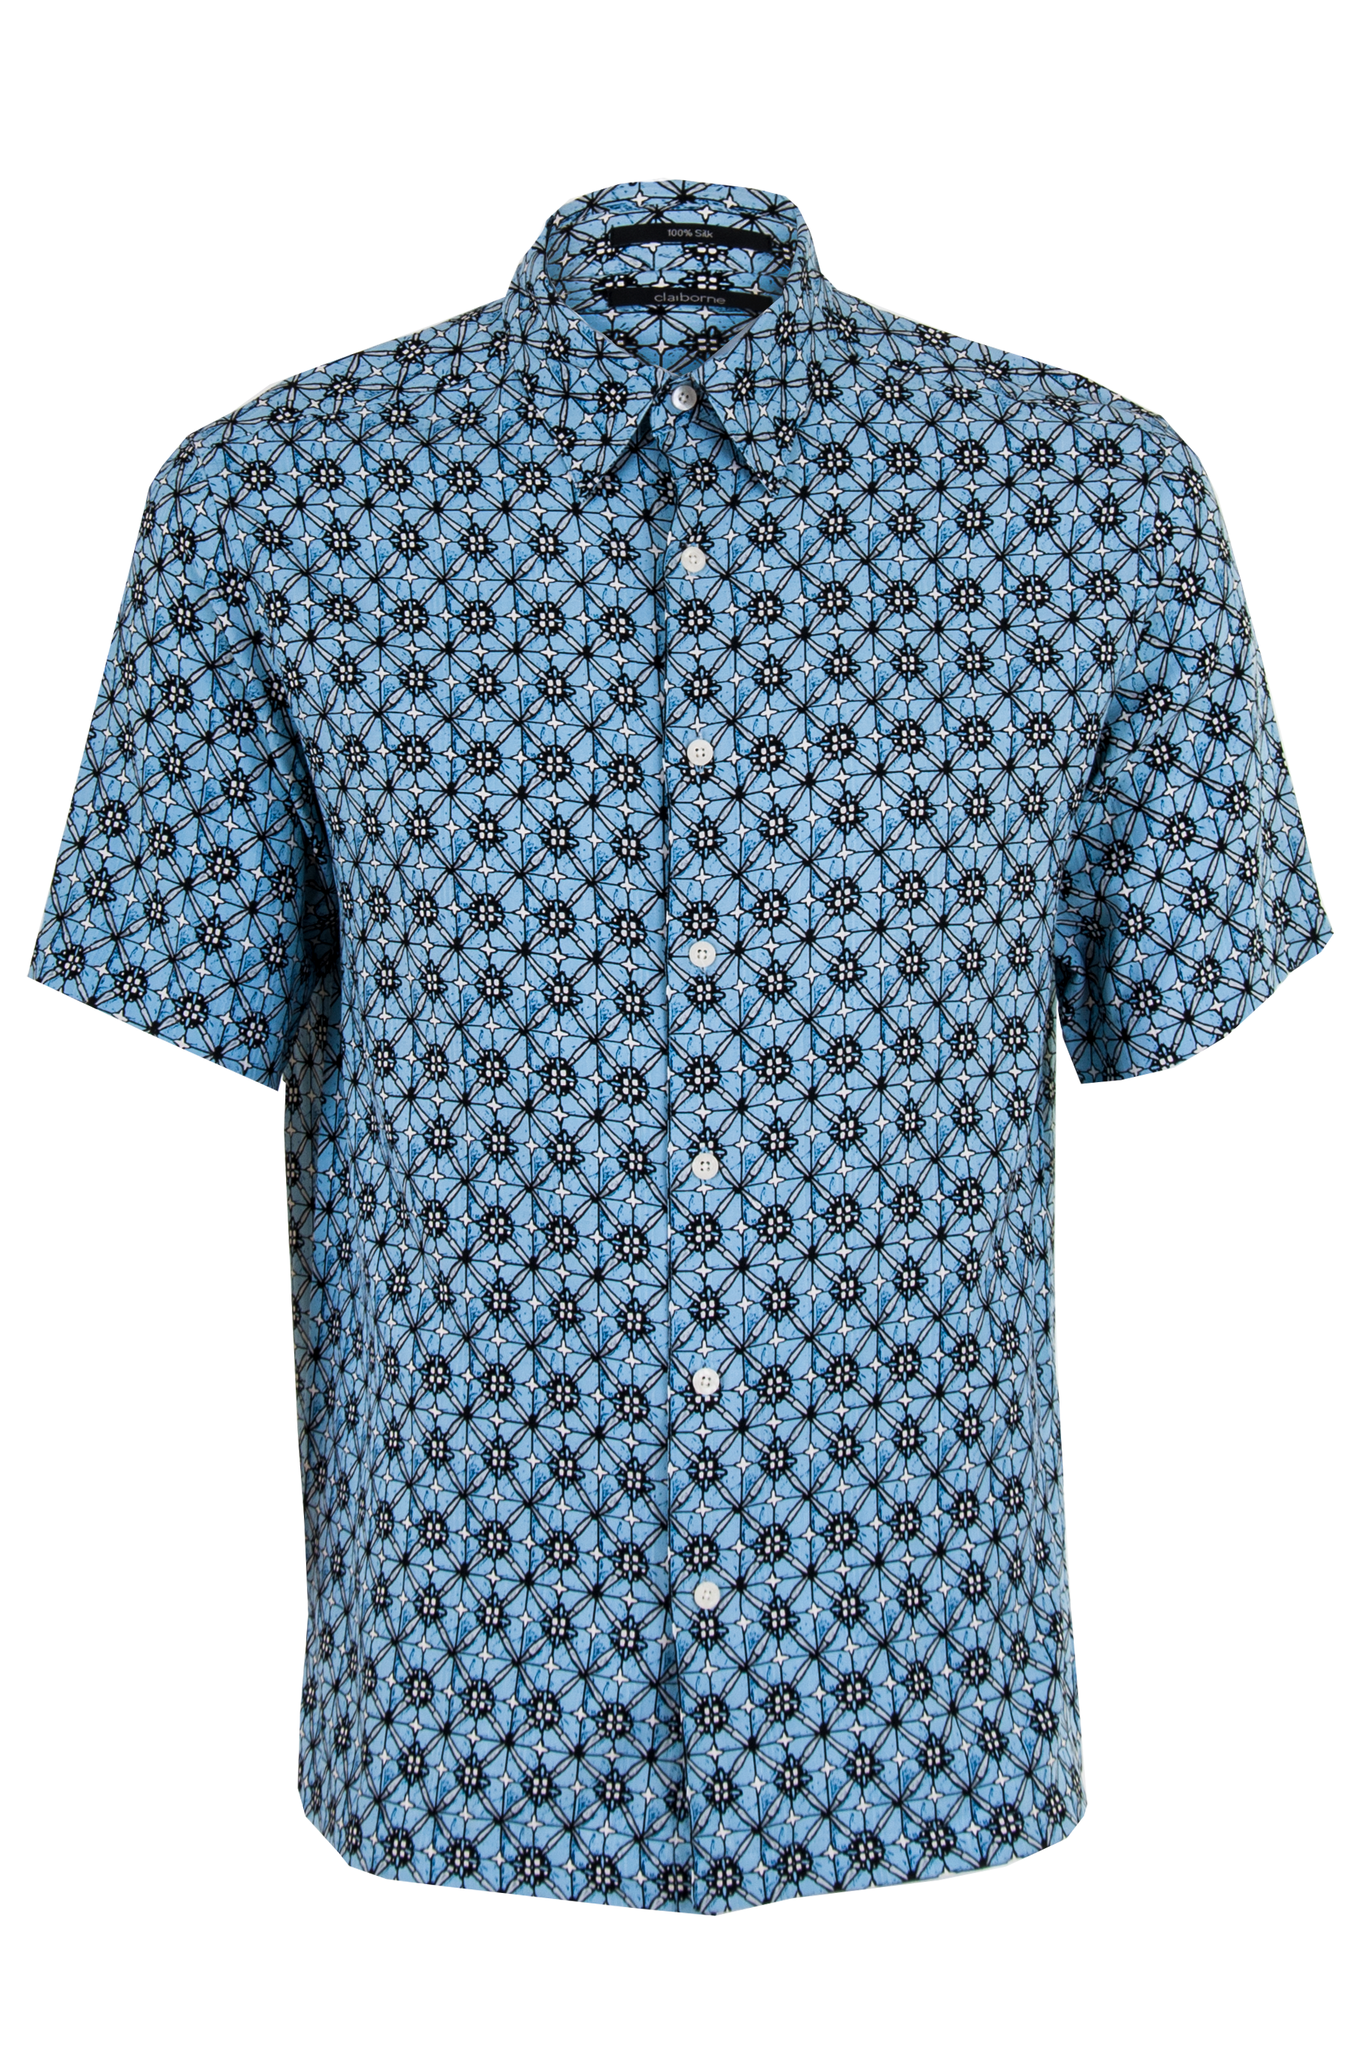 vintage printed button up shirt with short sleeves